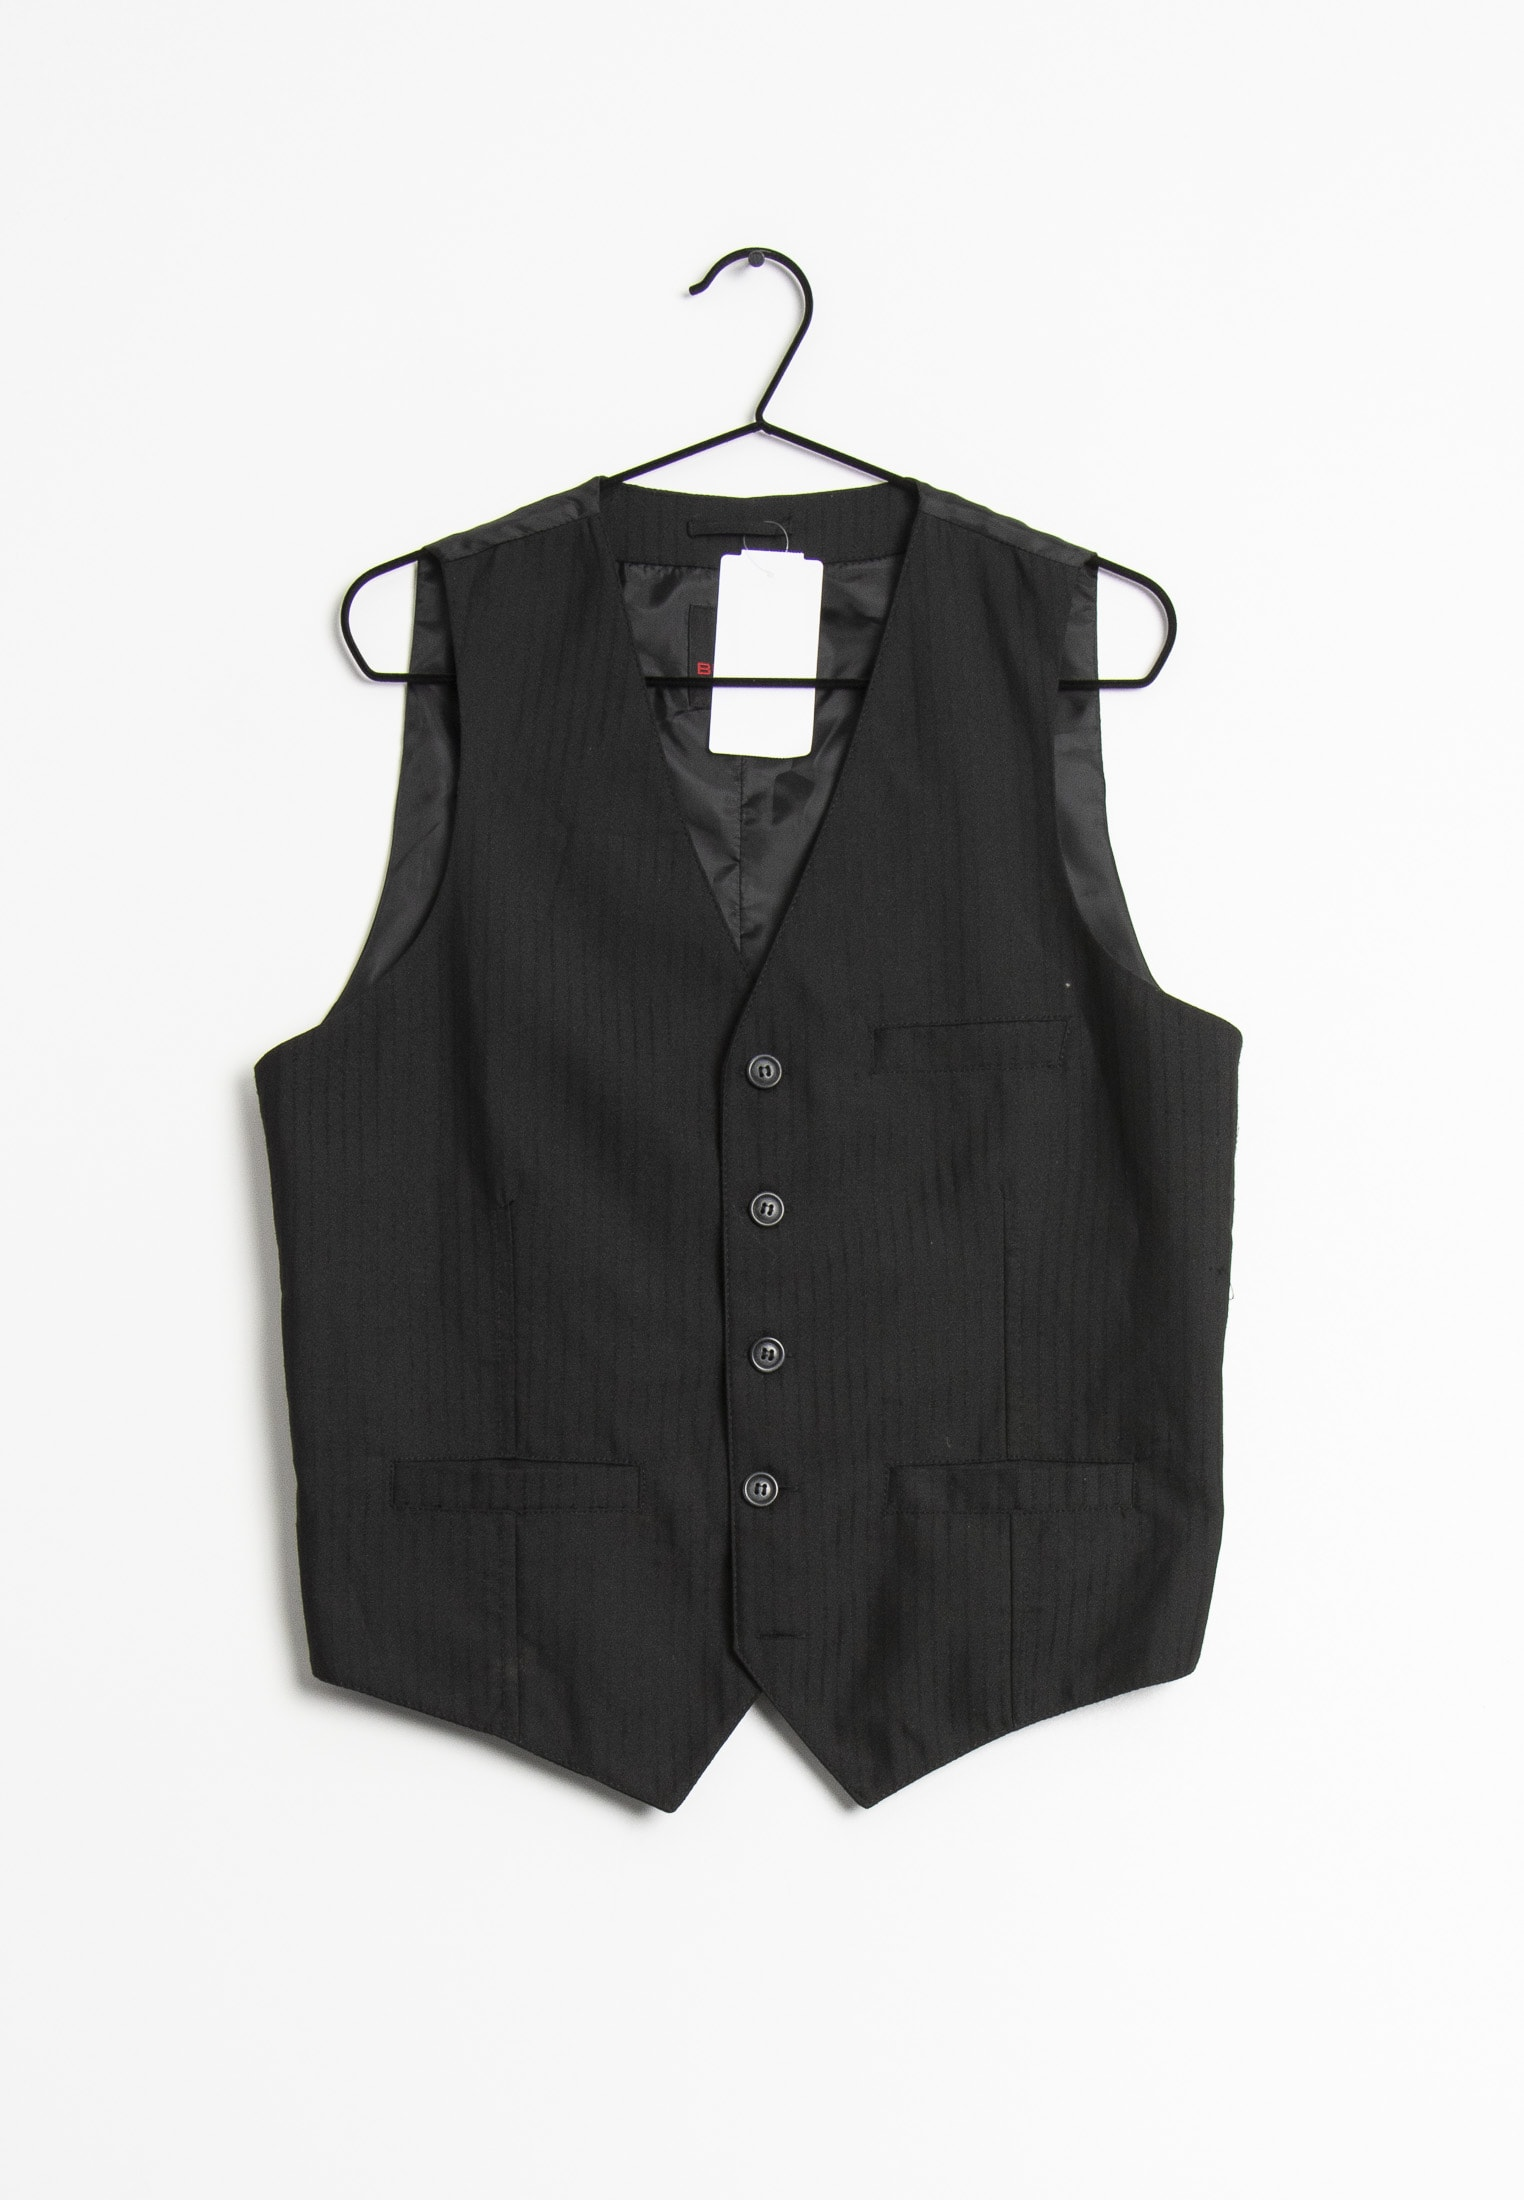 Burton Menswear London vest, sort, M